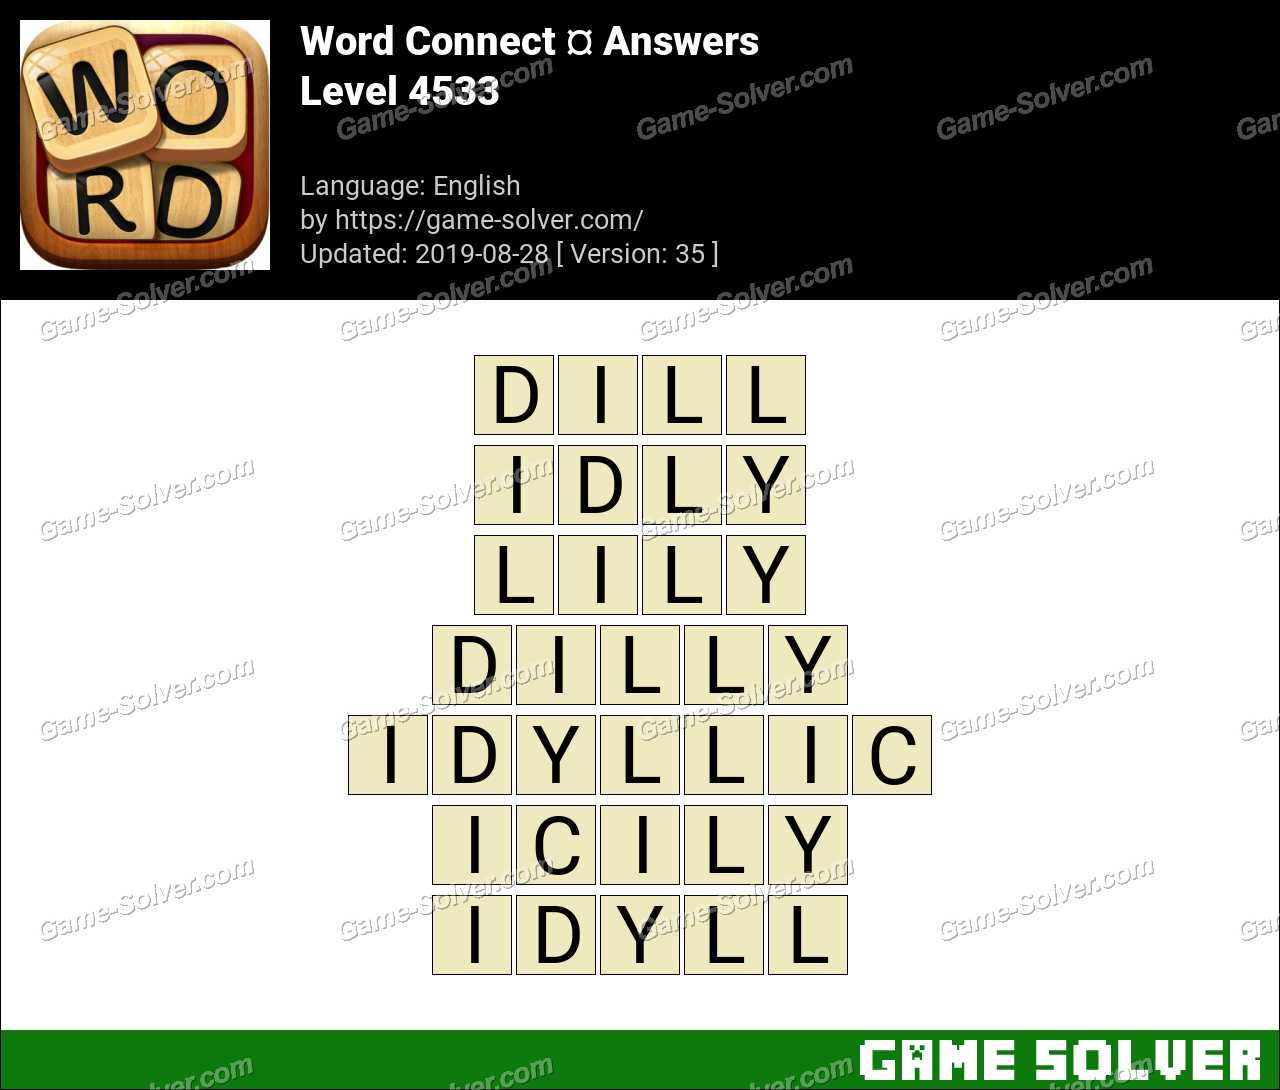 Word Connect Level 4533 Answers